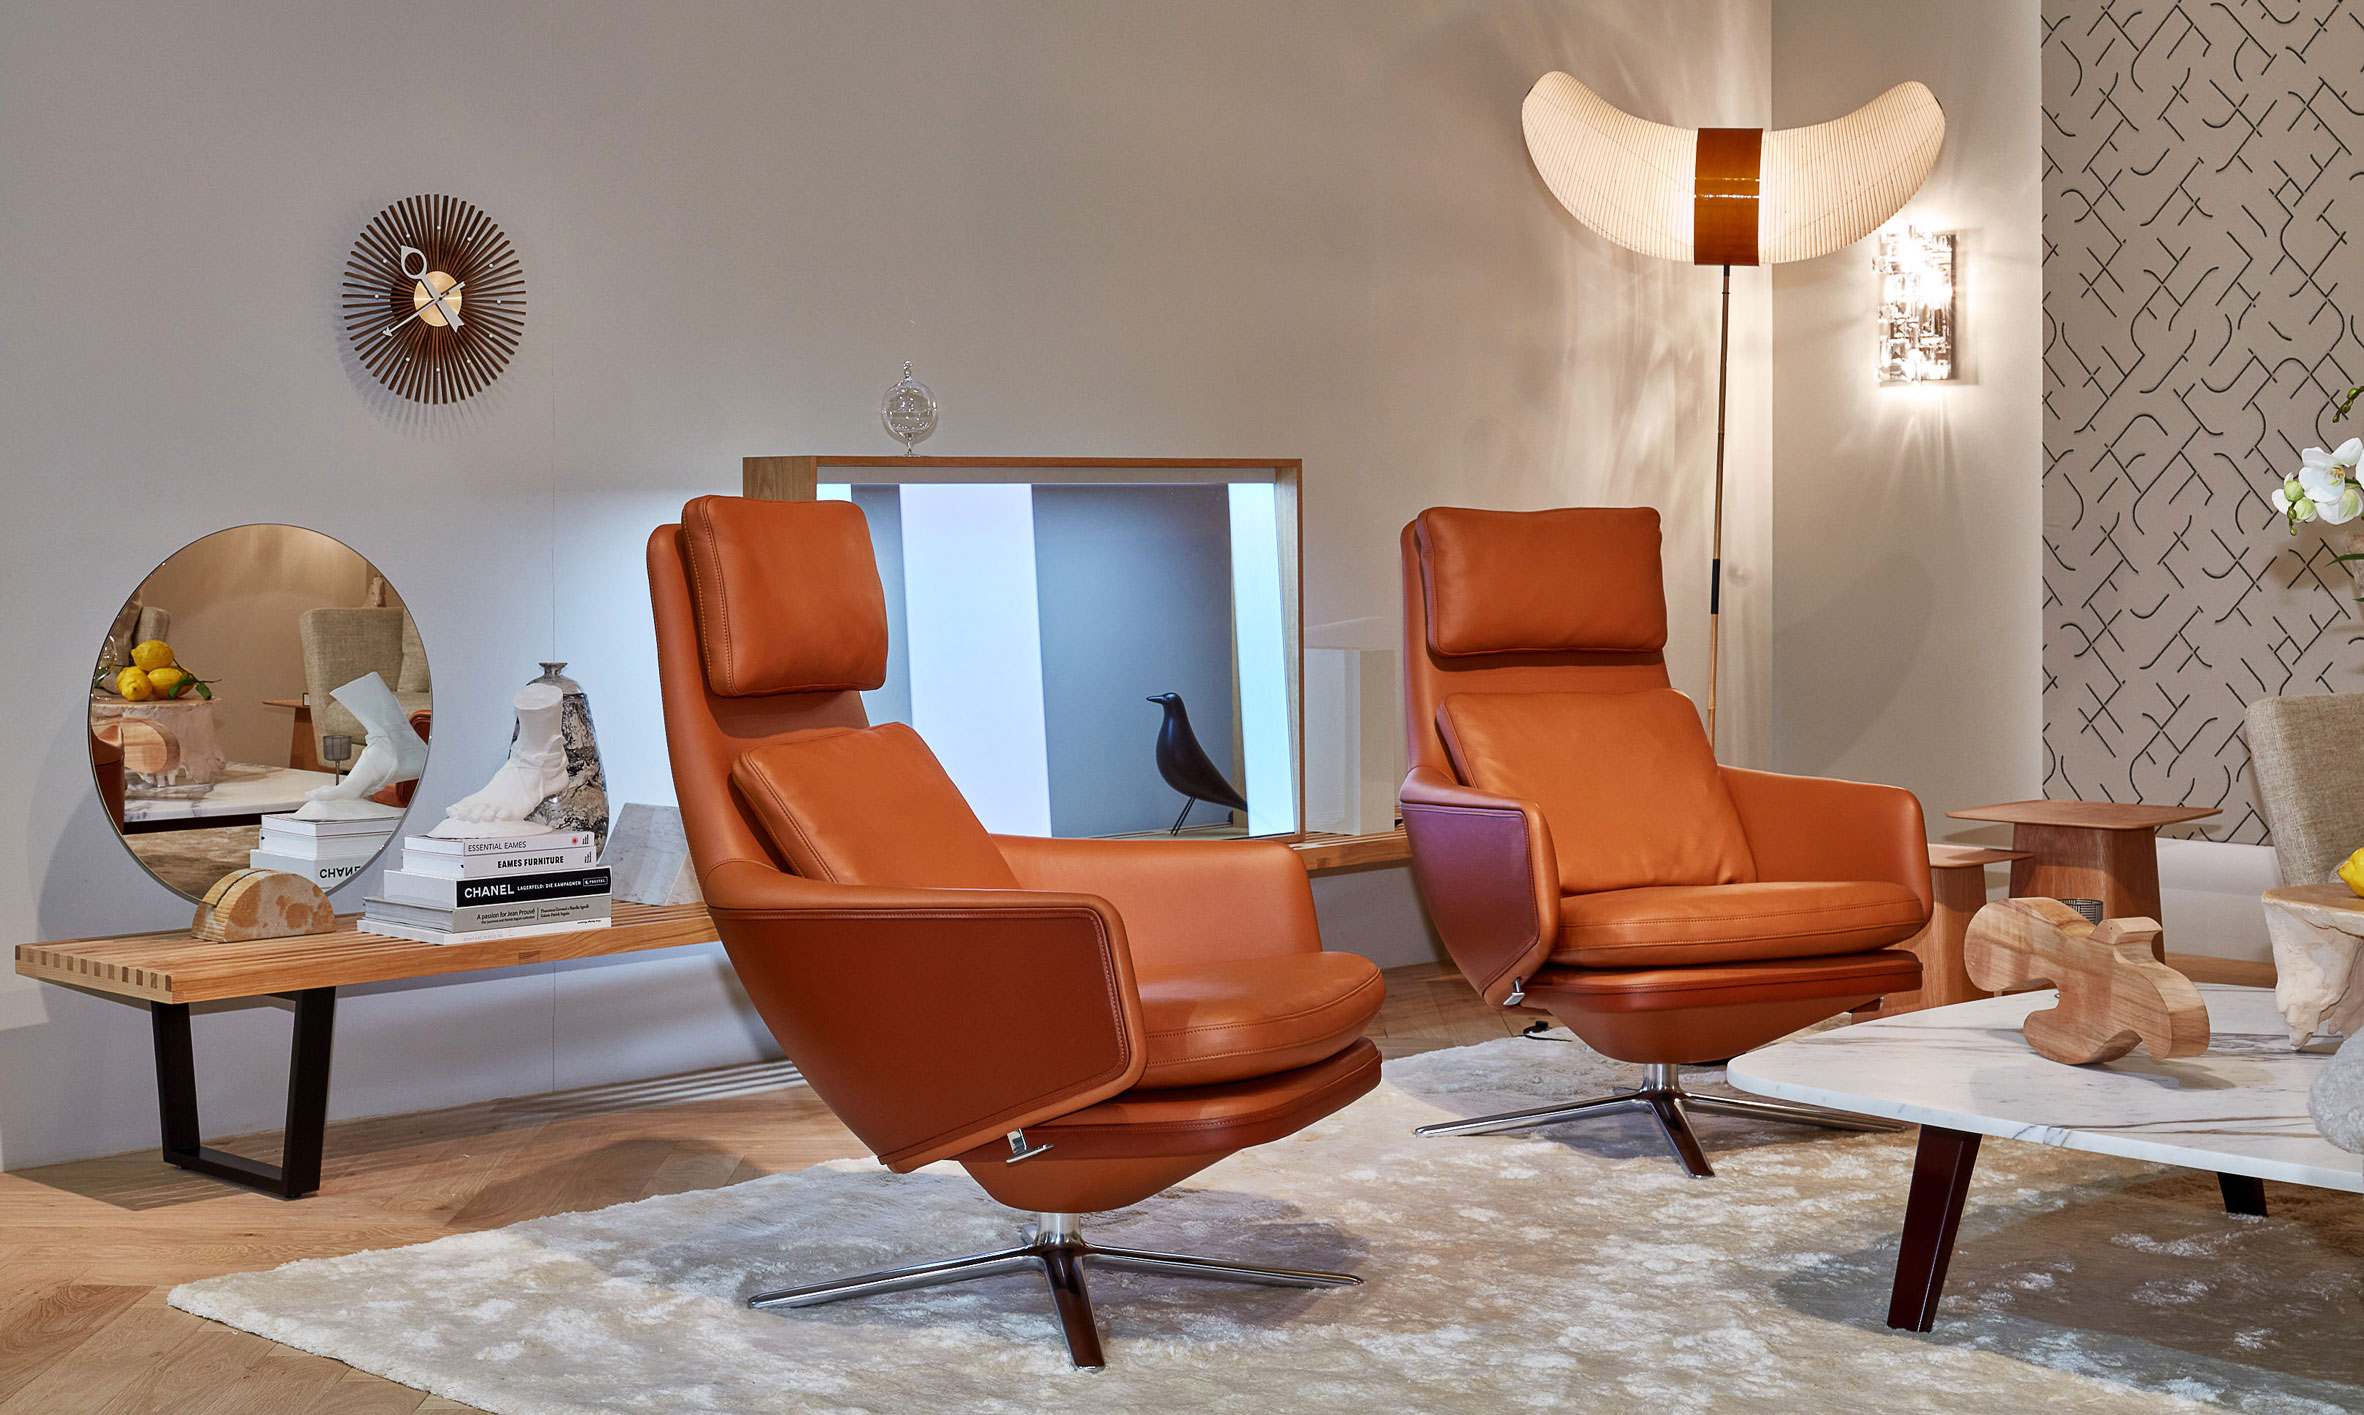 Vitra Collaborates With Antonio Citterio On Grand Relax Chair